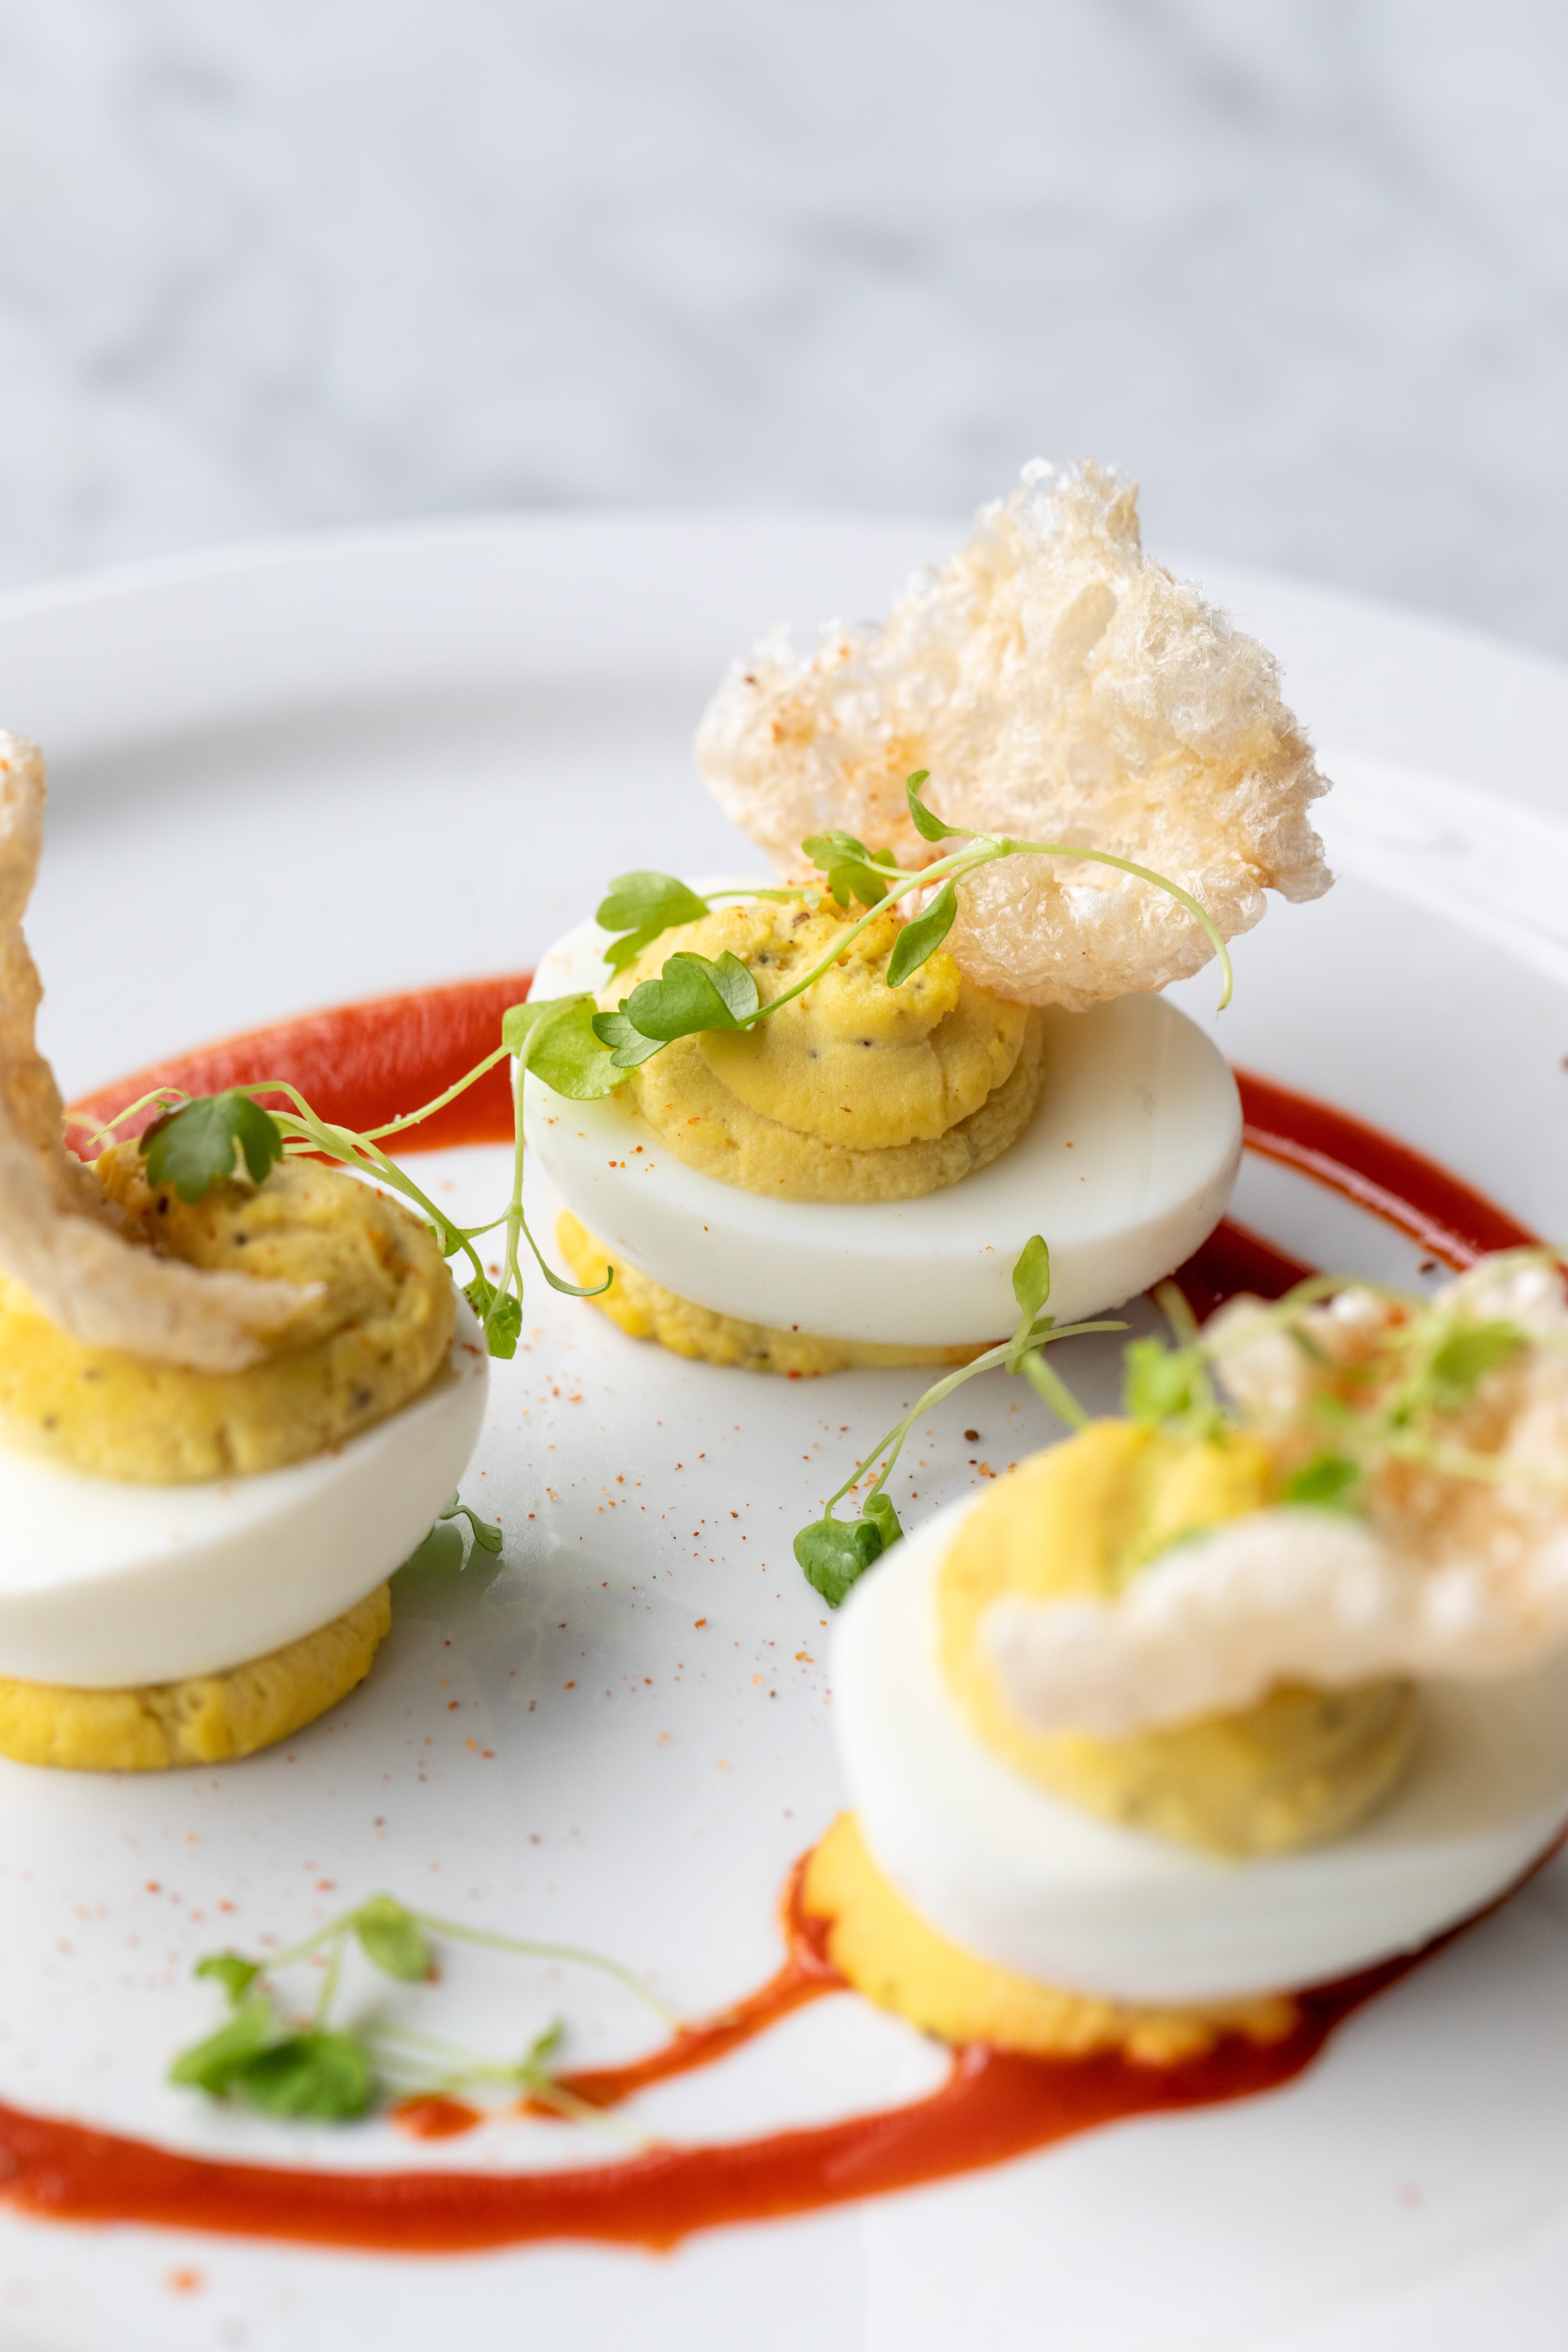 A deviled egg on a plate with pea shoots and pork rinds.